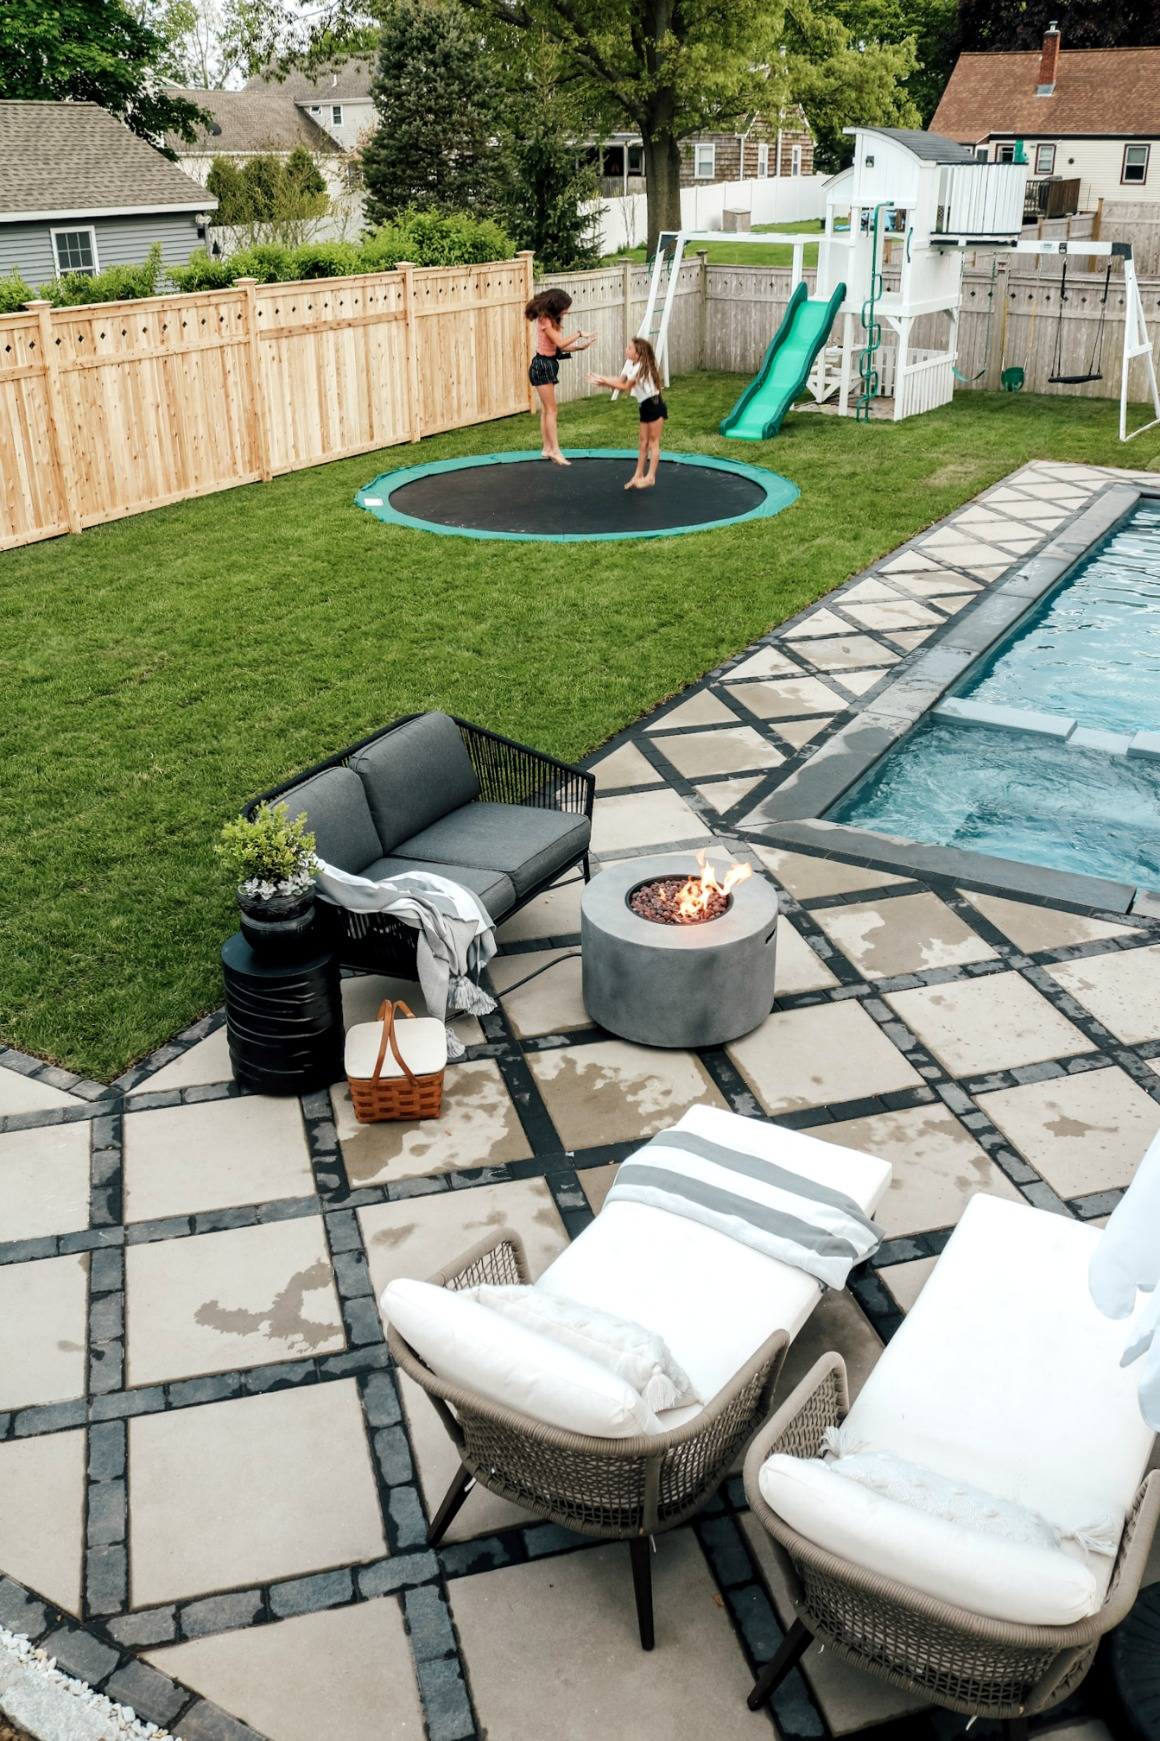 Our DIY In-ground Trampoline